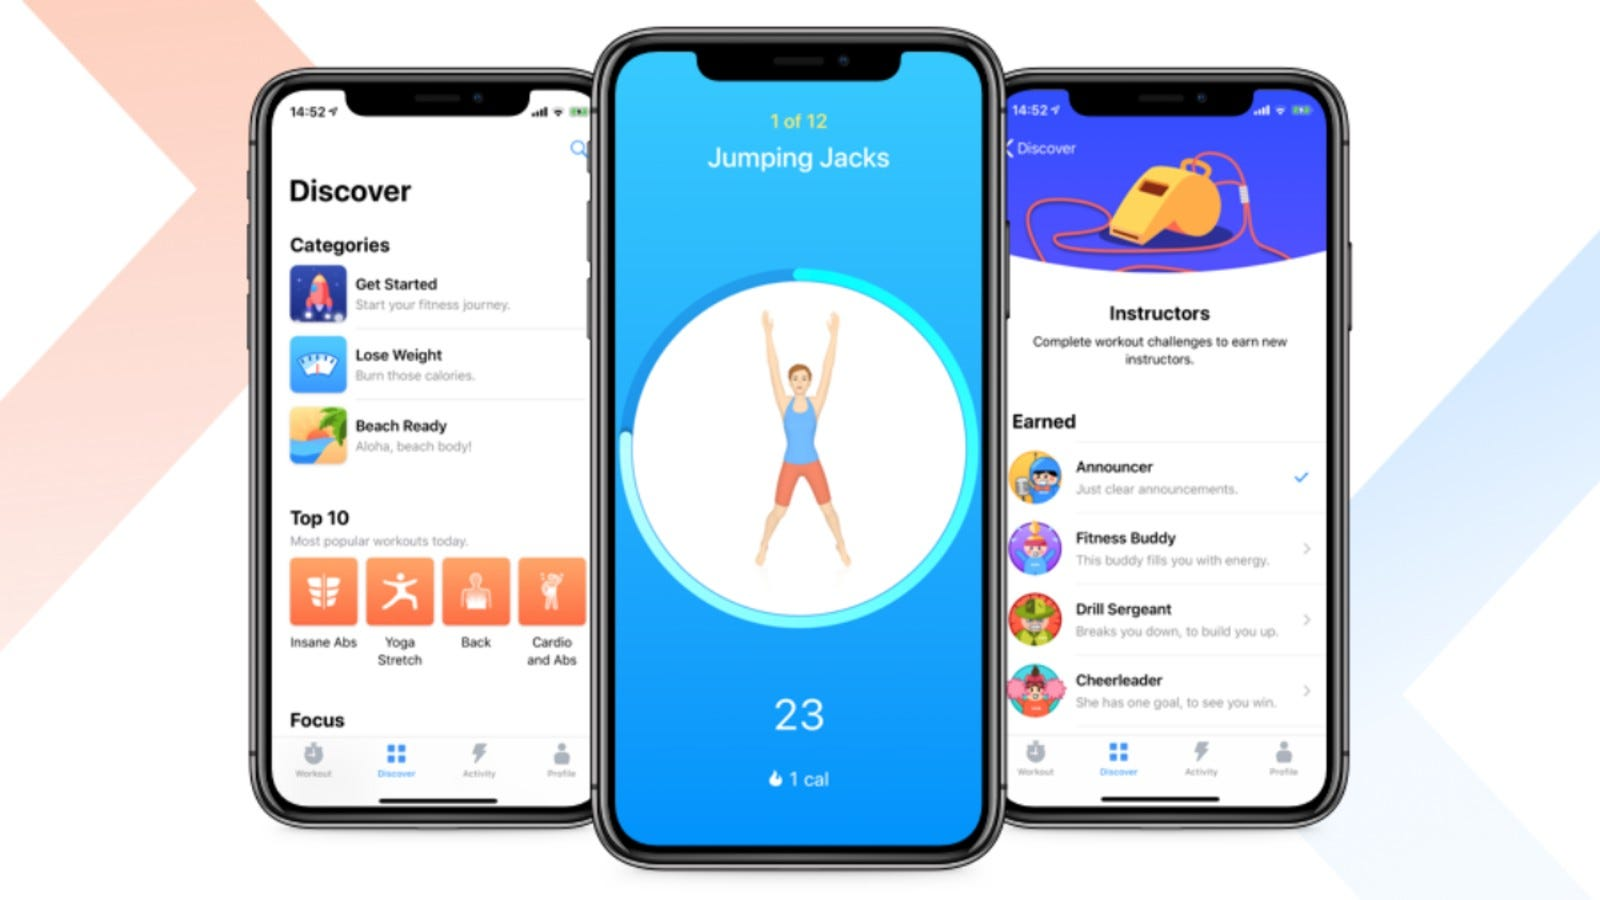 iPhone screens showing exercise app